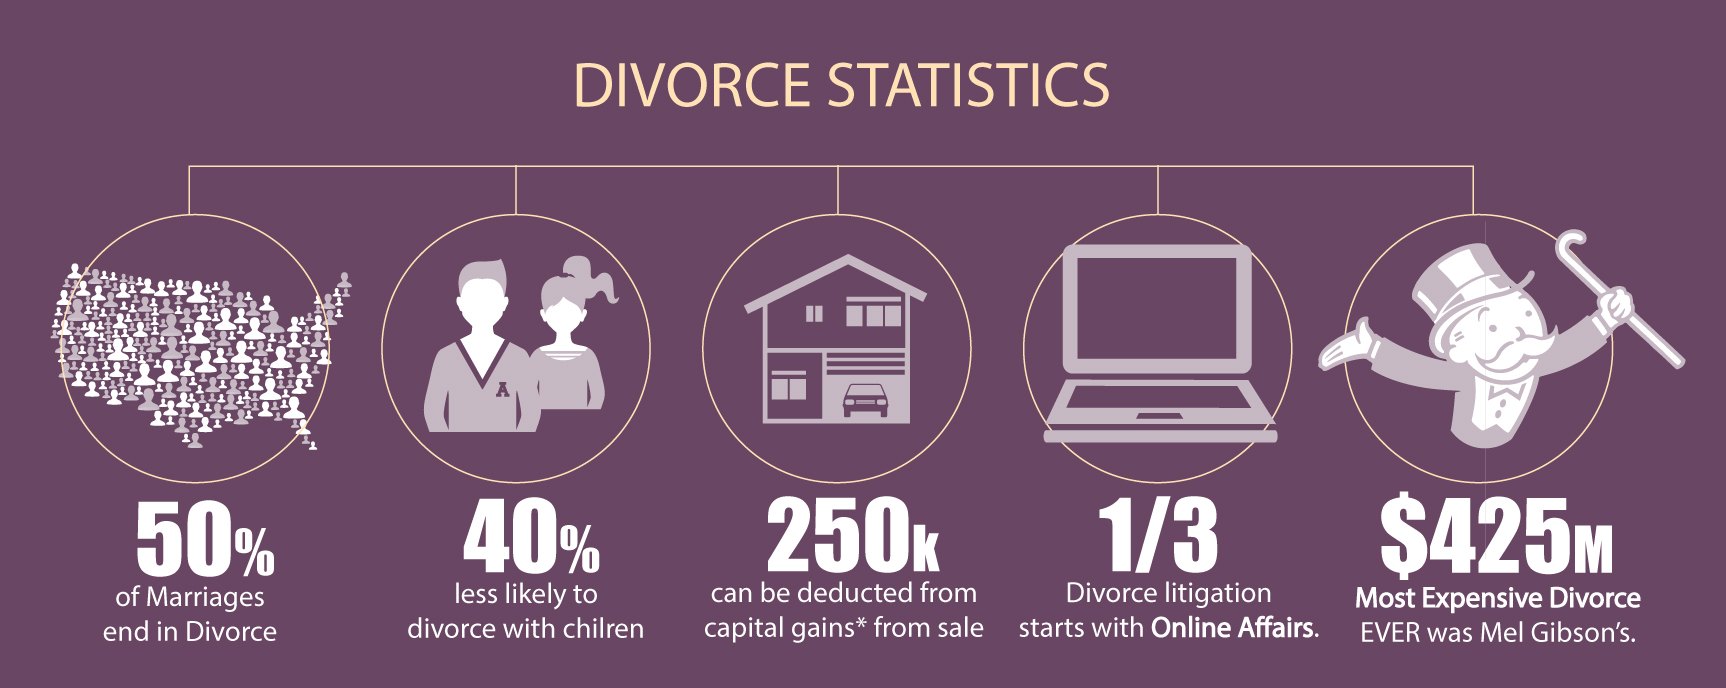 divorce-talktopaul-paul-argueta-divorce-real-estate-agent-stats